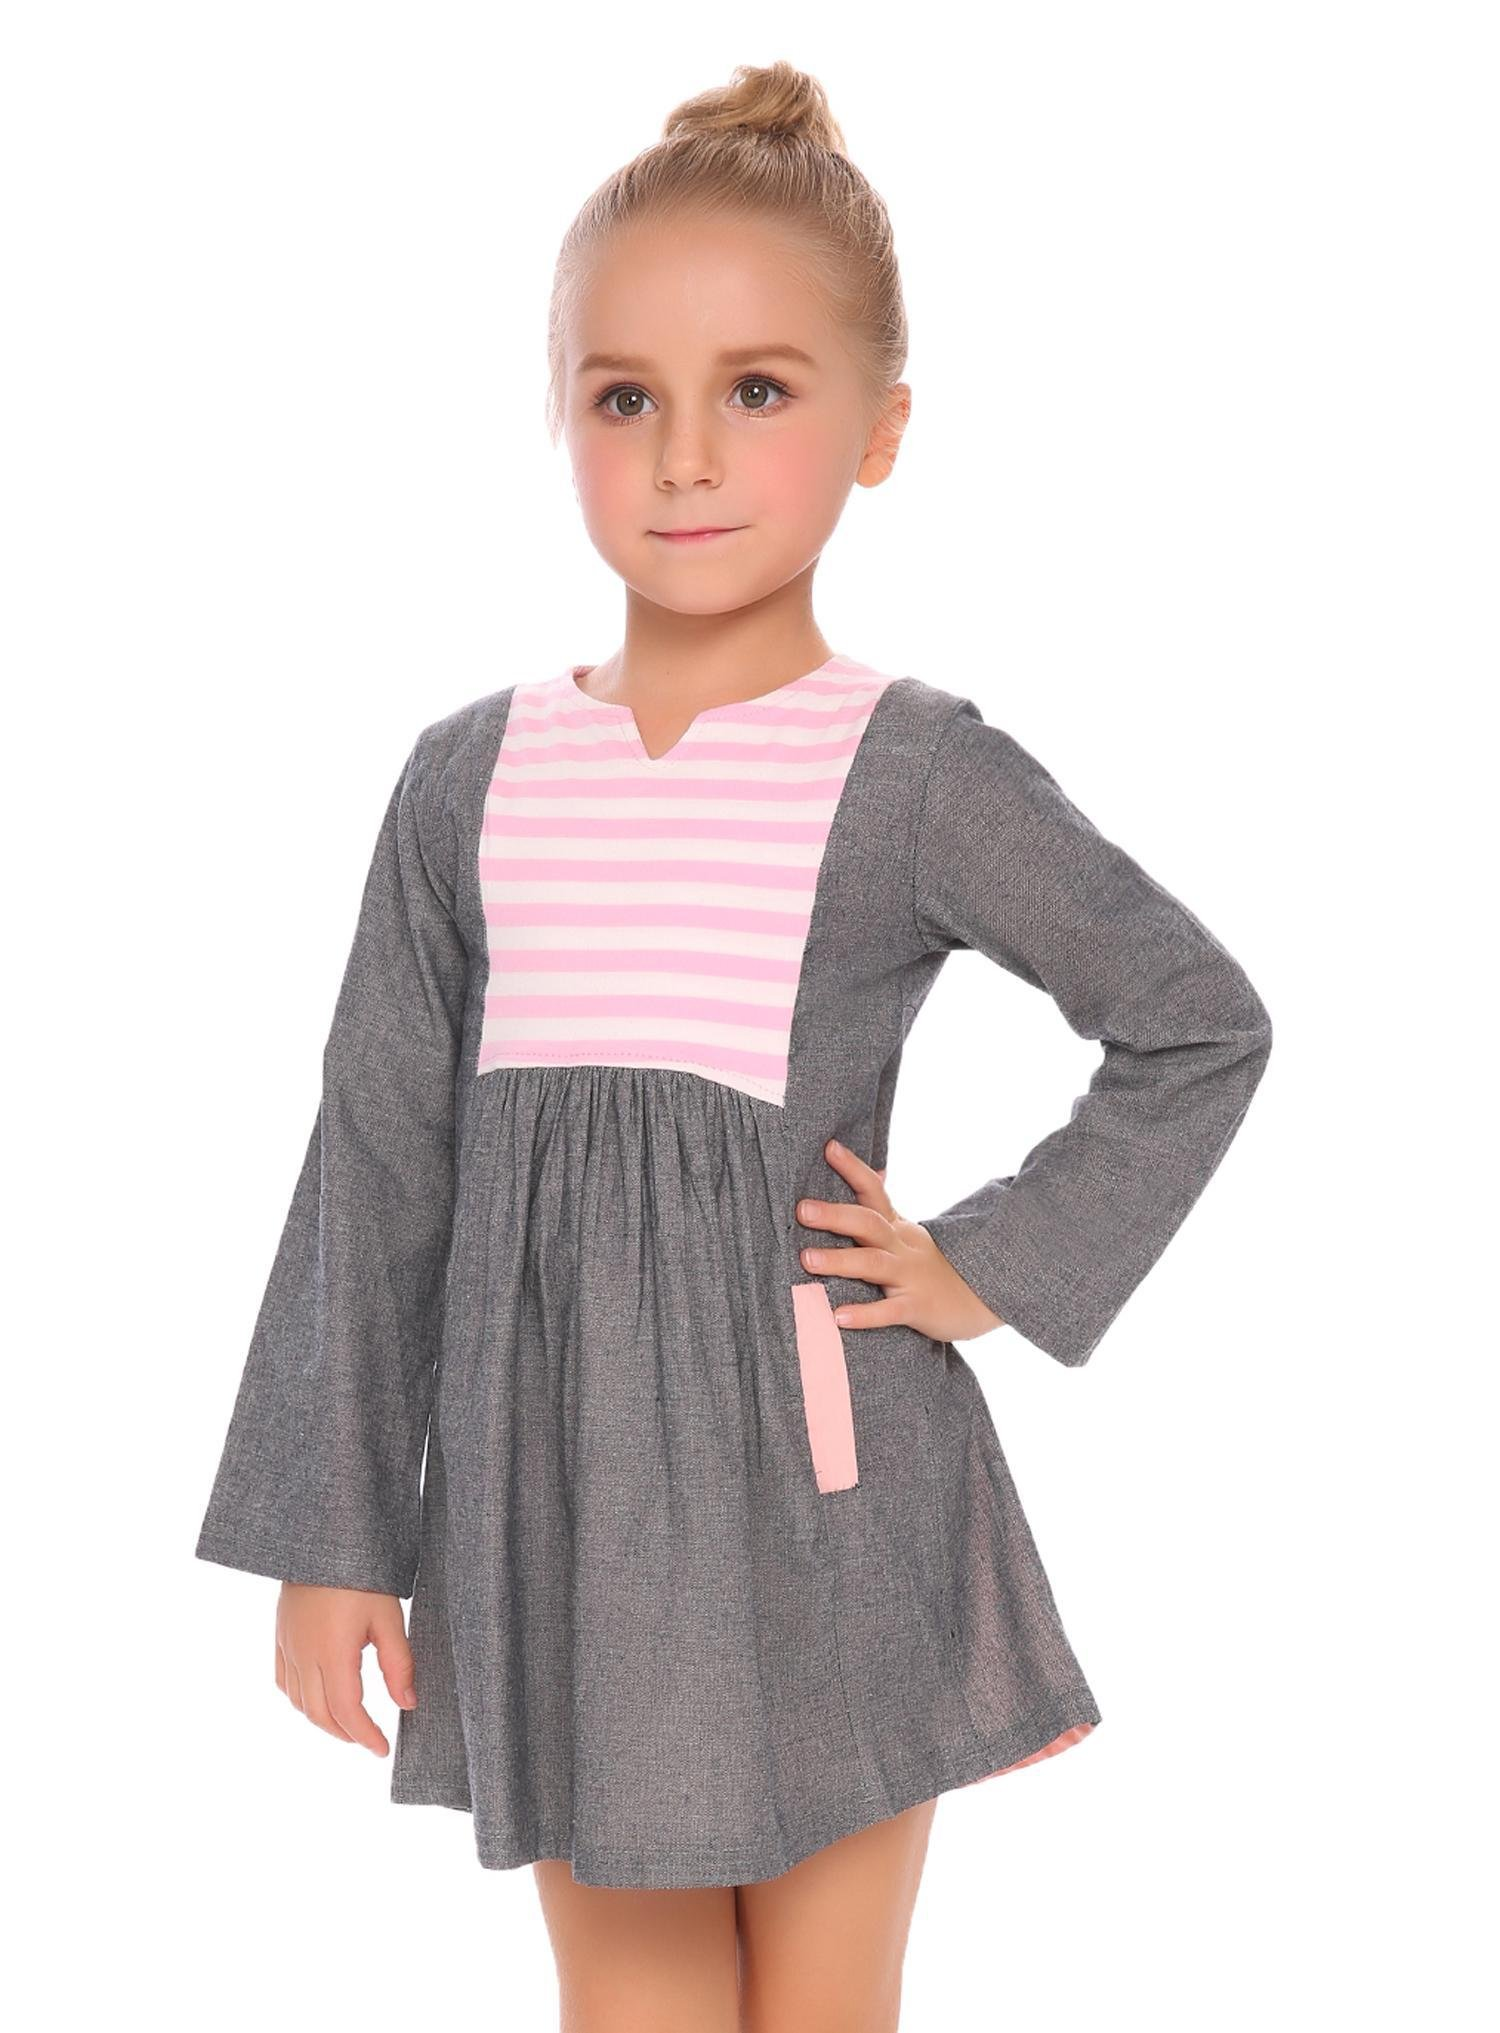 Goldenfox Little Girls cute tunic dress long sleeve fall top ruffle soft shirt